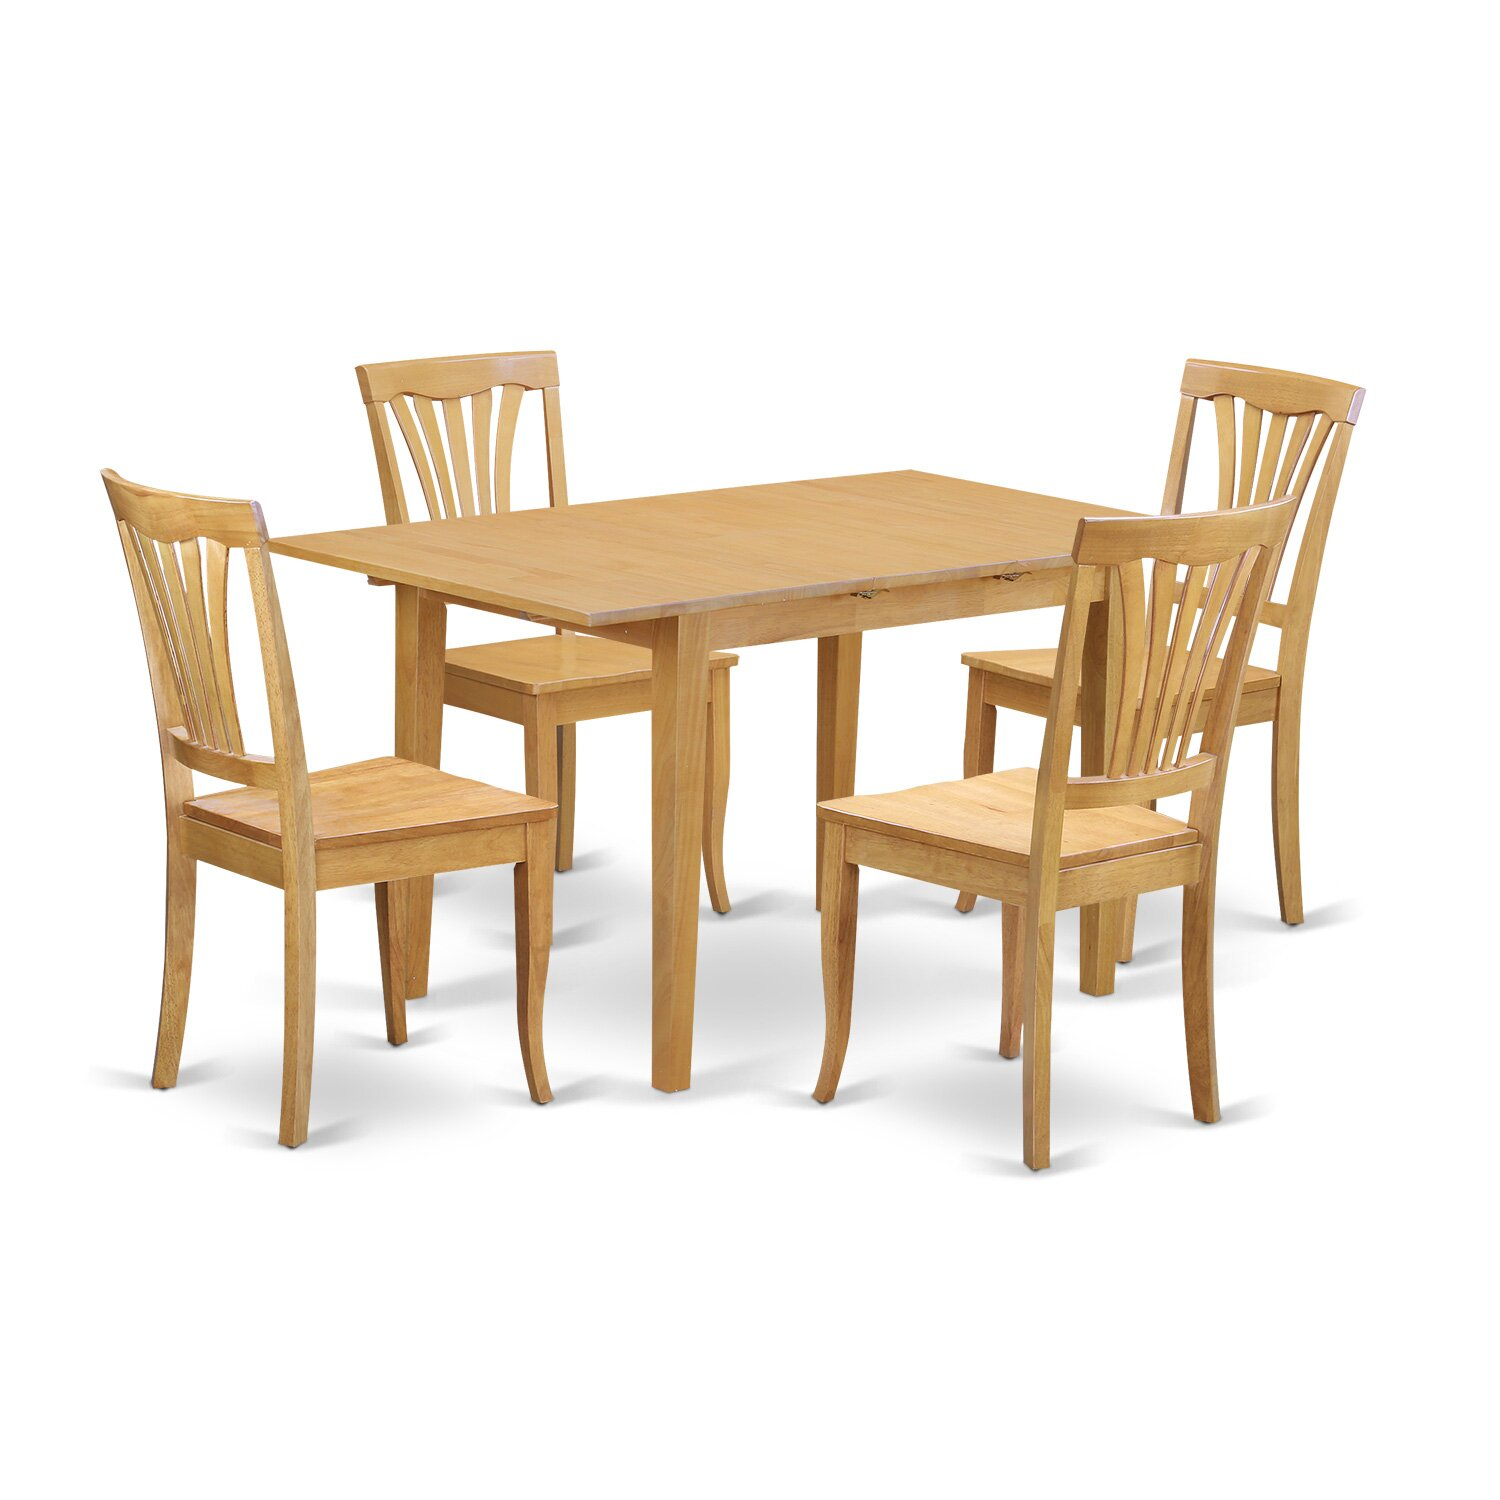 East West Norfolk 5 Piece Dining Set Wayfair